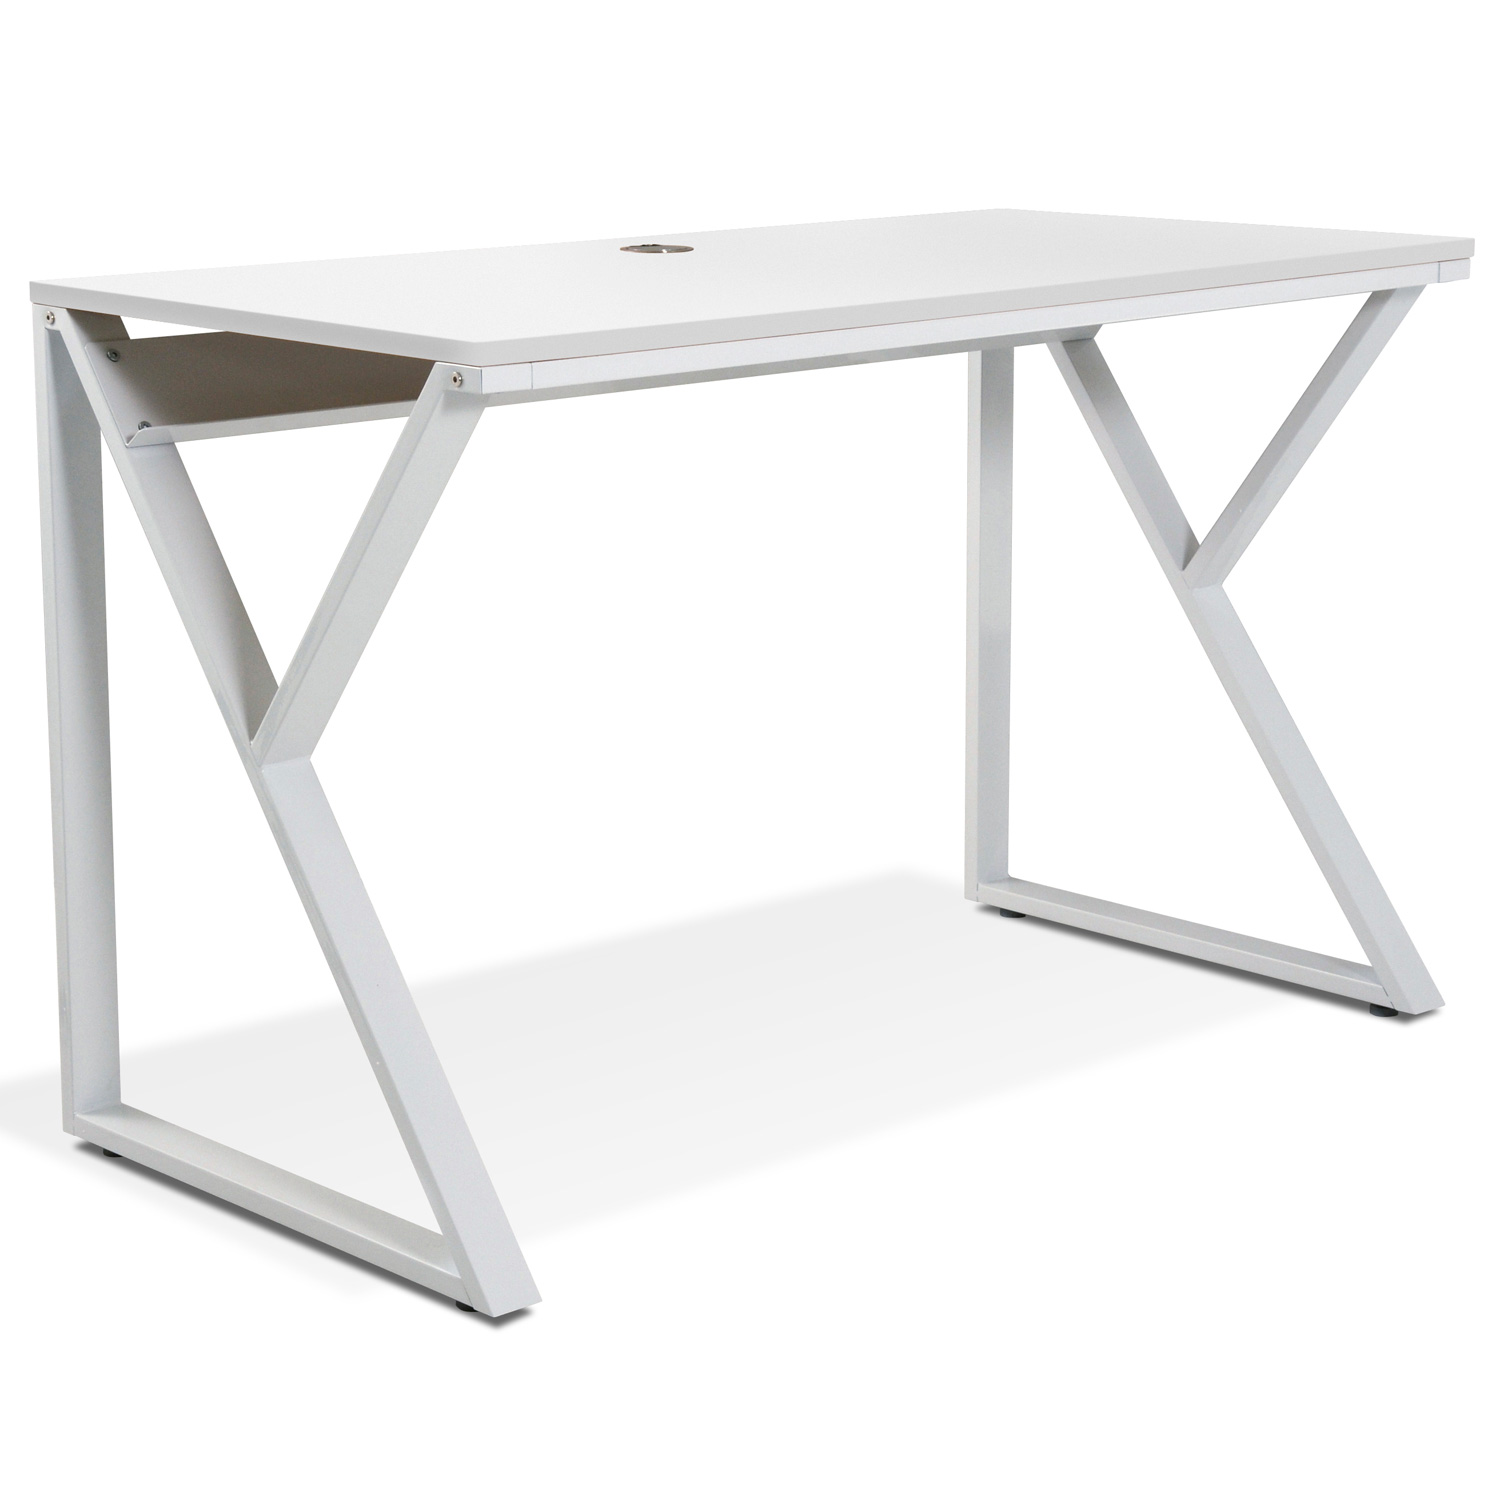 Contemporary Writing Desk - Steel Base, White - UNIQ-X222-WH